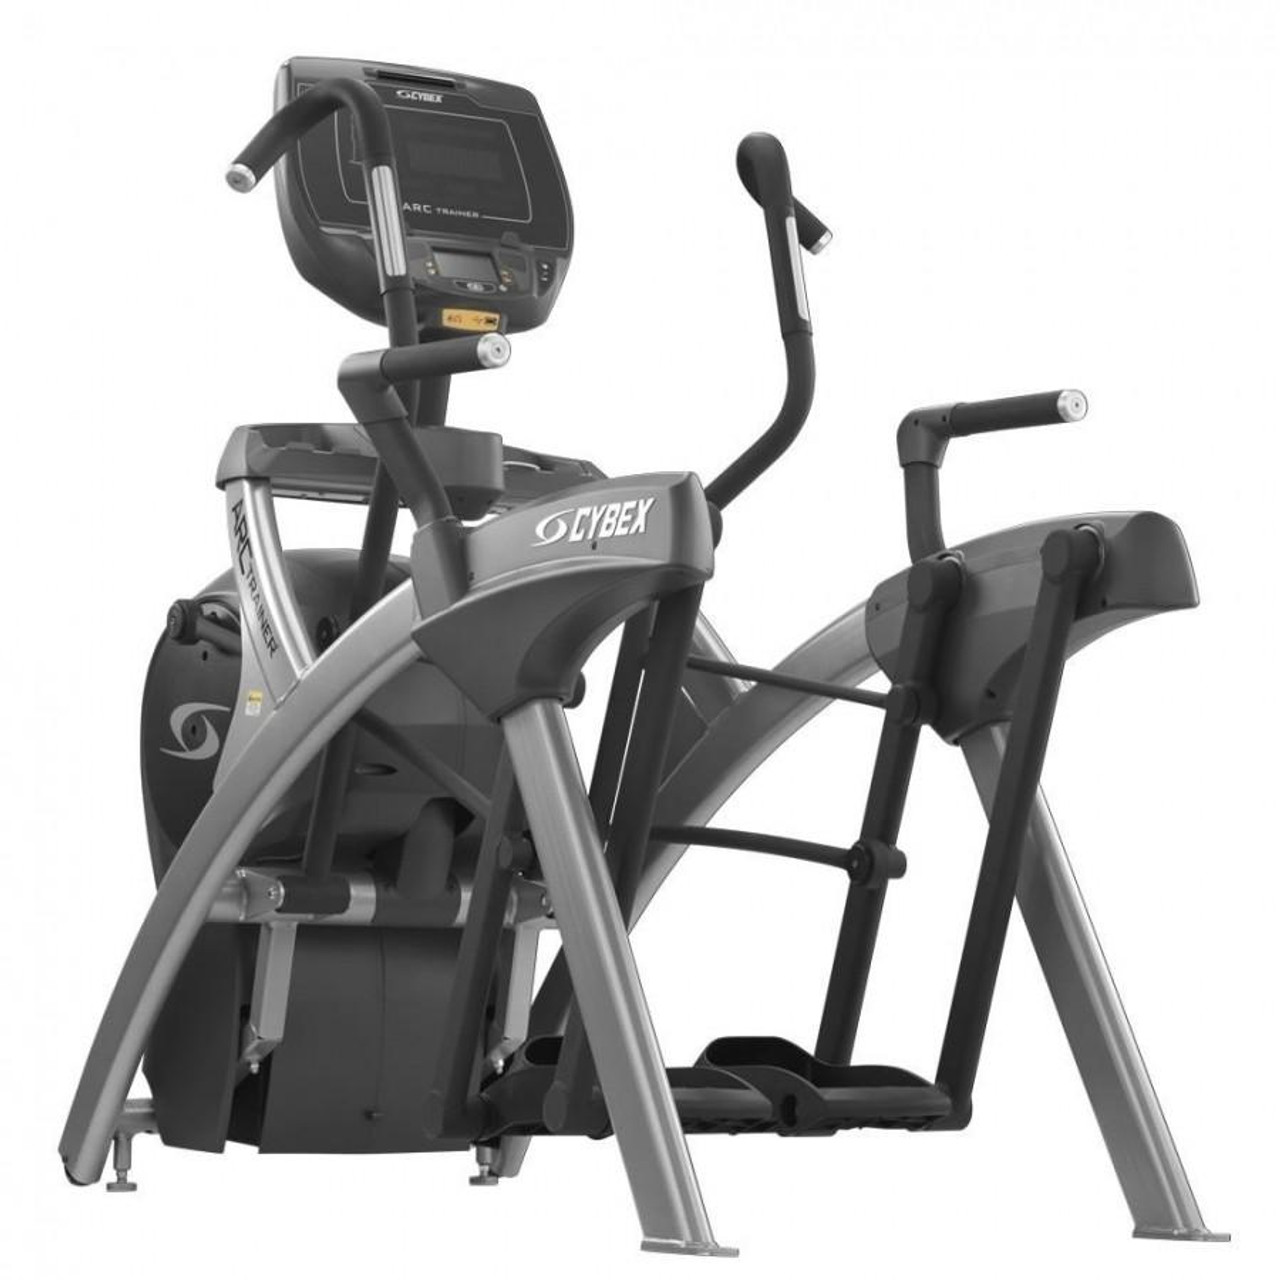 Cybex 770AT Total Body Arc Trainer w/LED Console